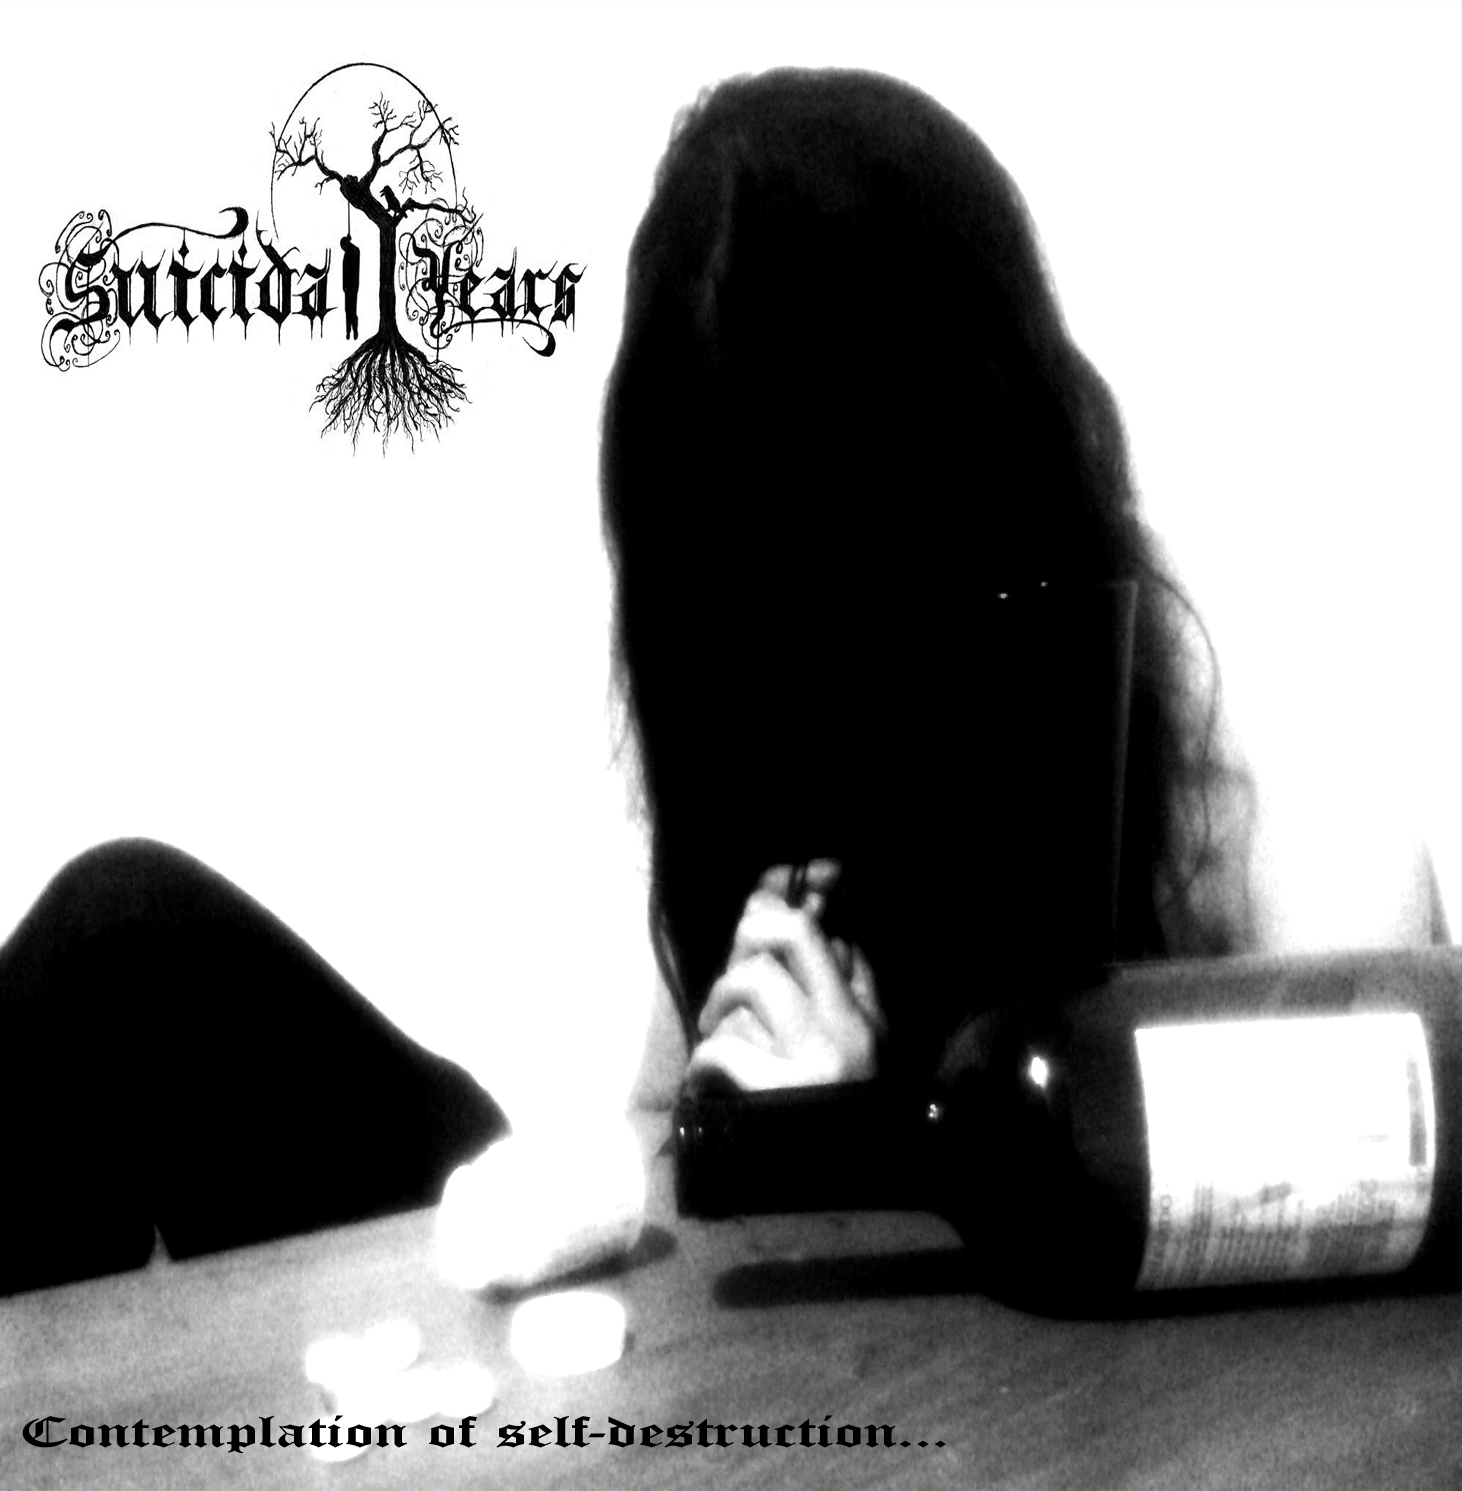 depressive suicidal black metal - DriverLayer Search Engine